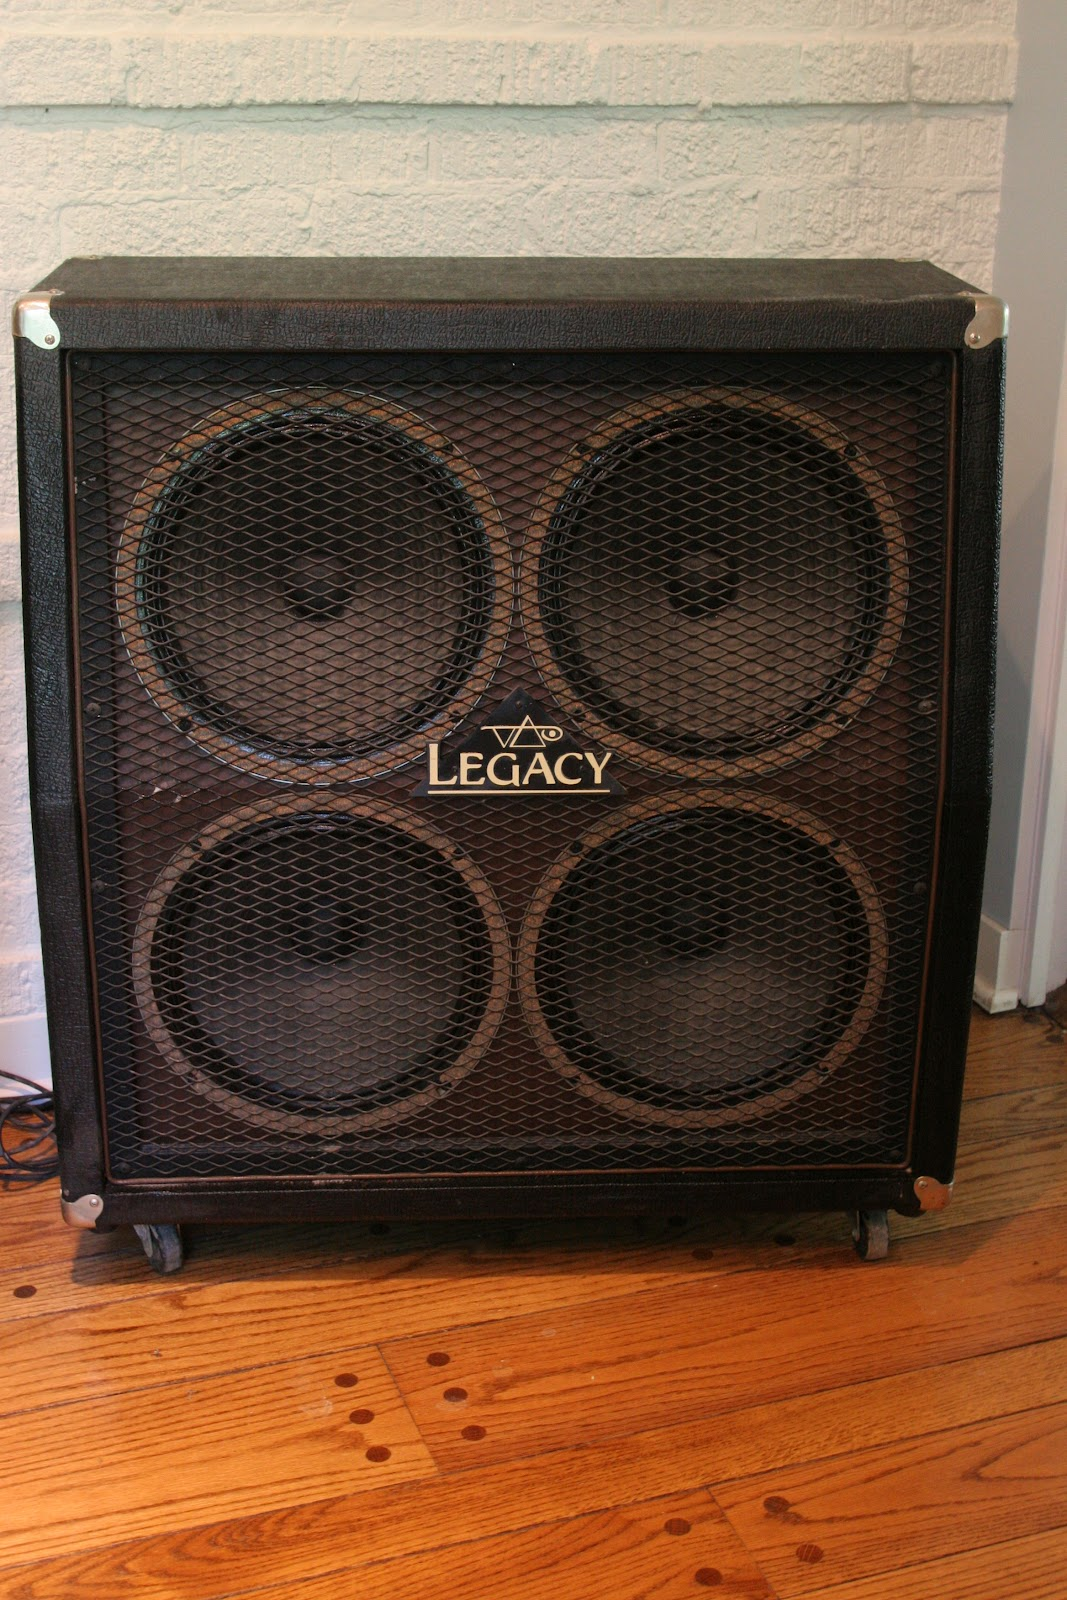 Guitar Industry Trends and Dynamics: Carvin Vai Legacy 4x12 Cabinet